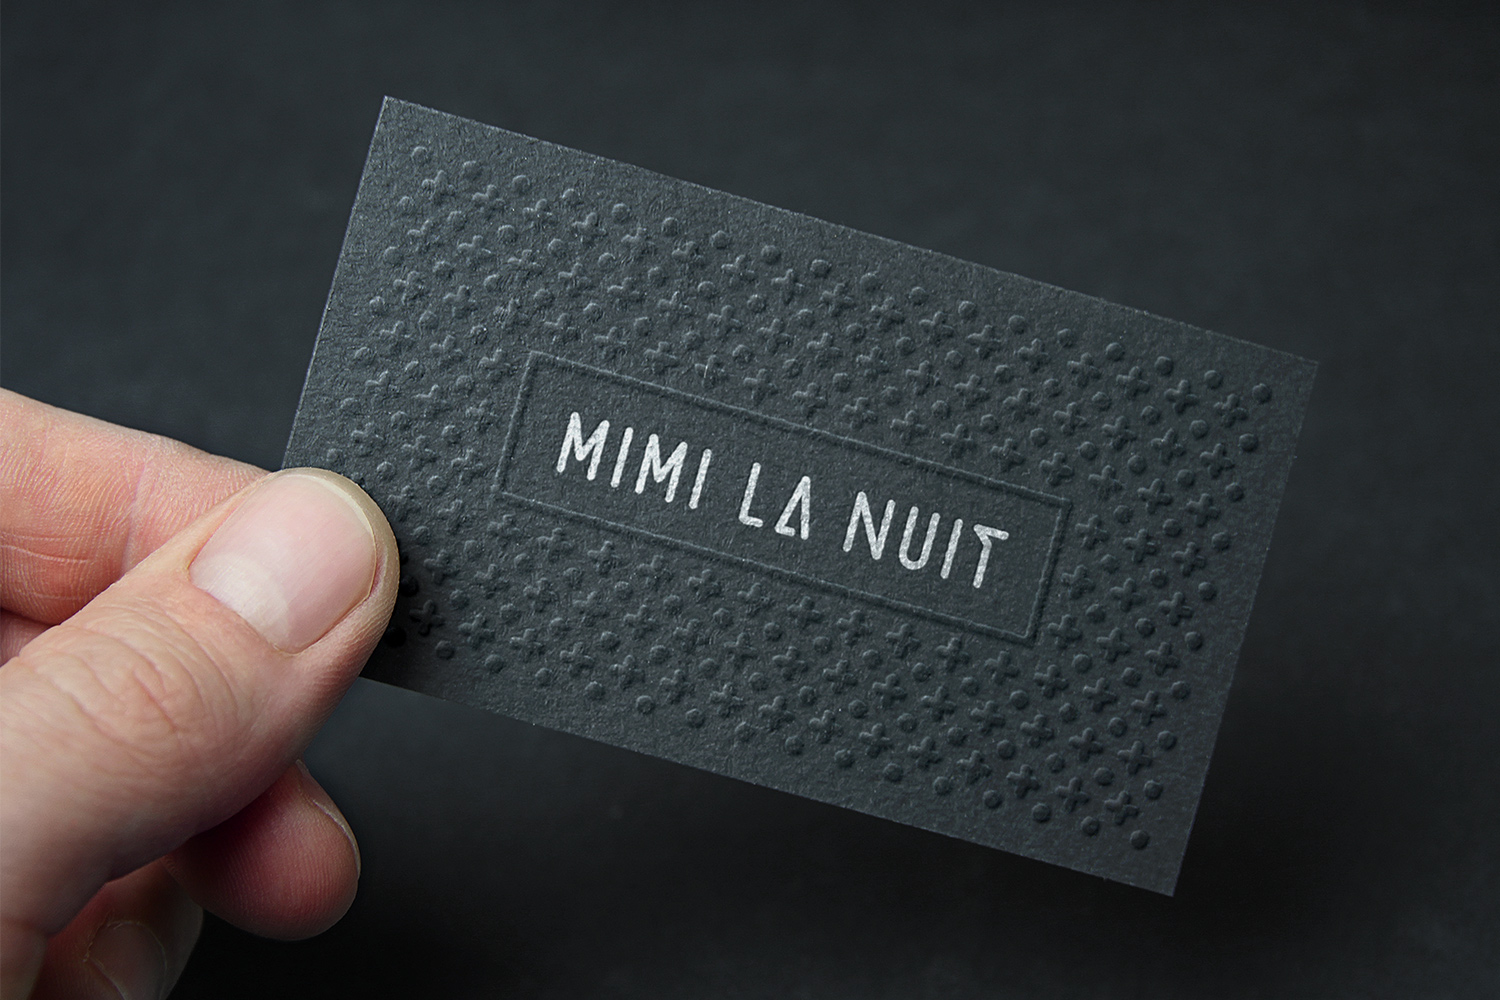 Restaurant business card. Embossed cardboard with minimalist and modern pattern made of a composition of dots and crosses. Silver text, centered inside a rectangle. Built-in Branding 360